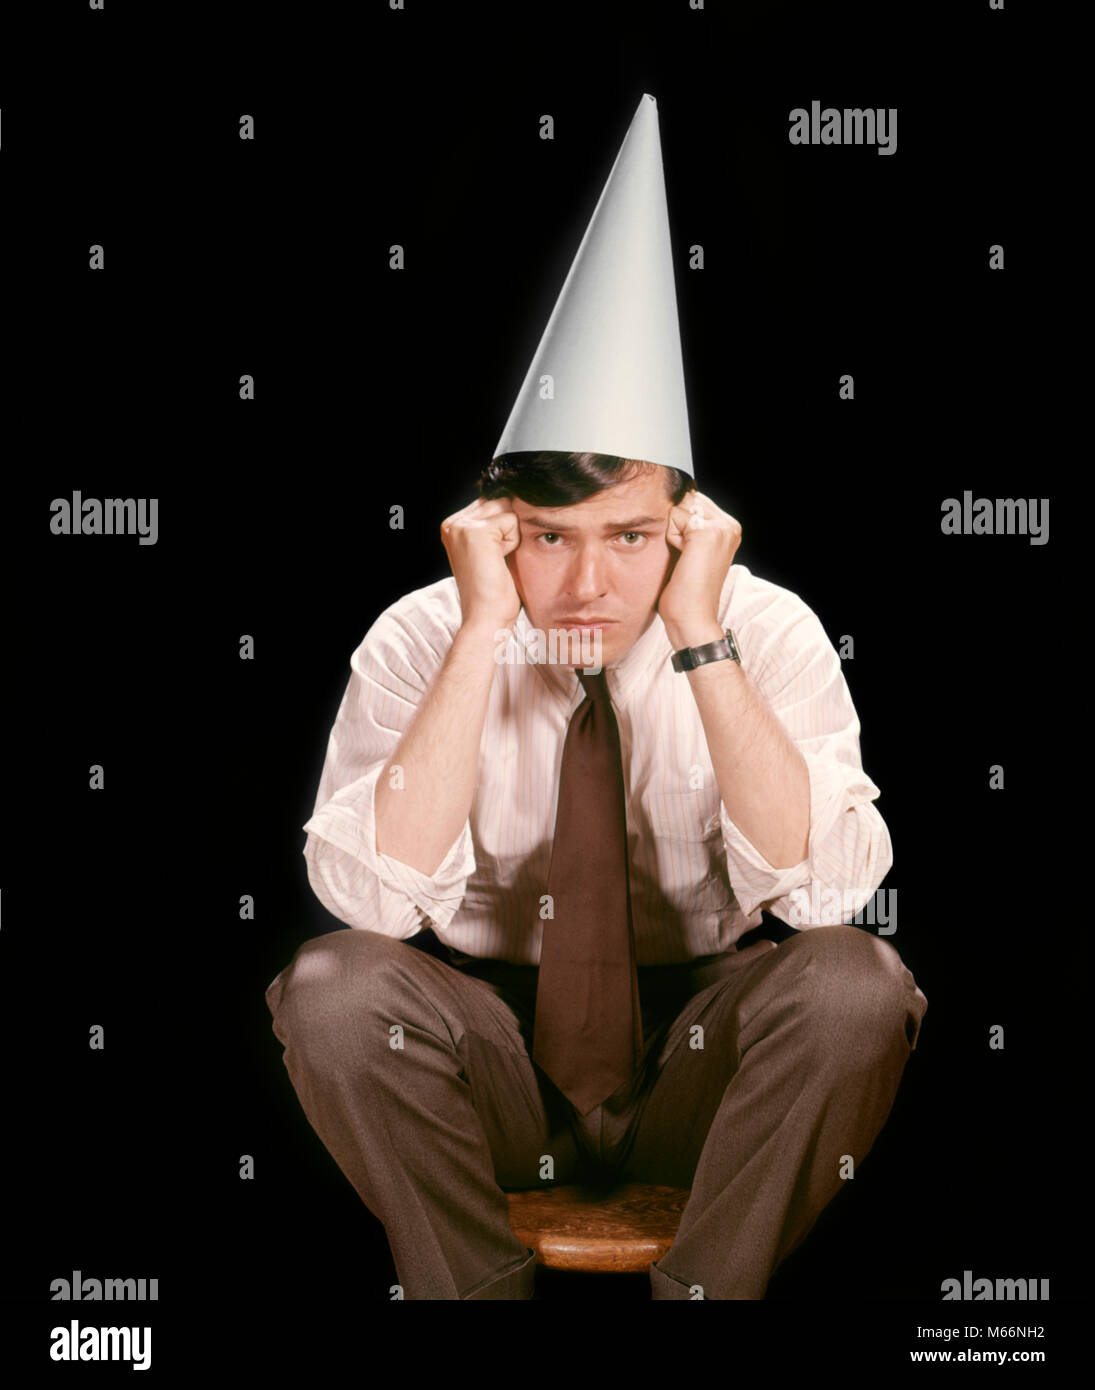 Image result for images of professor in dunce cap